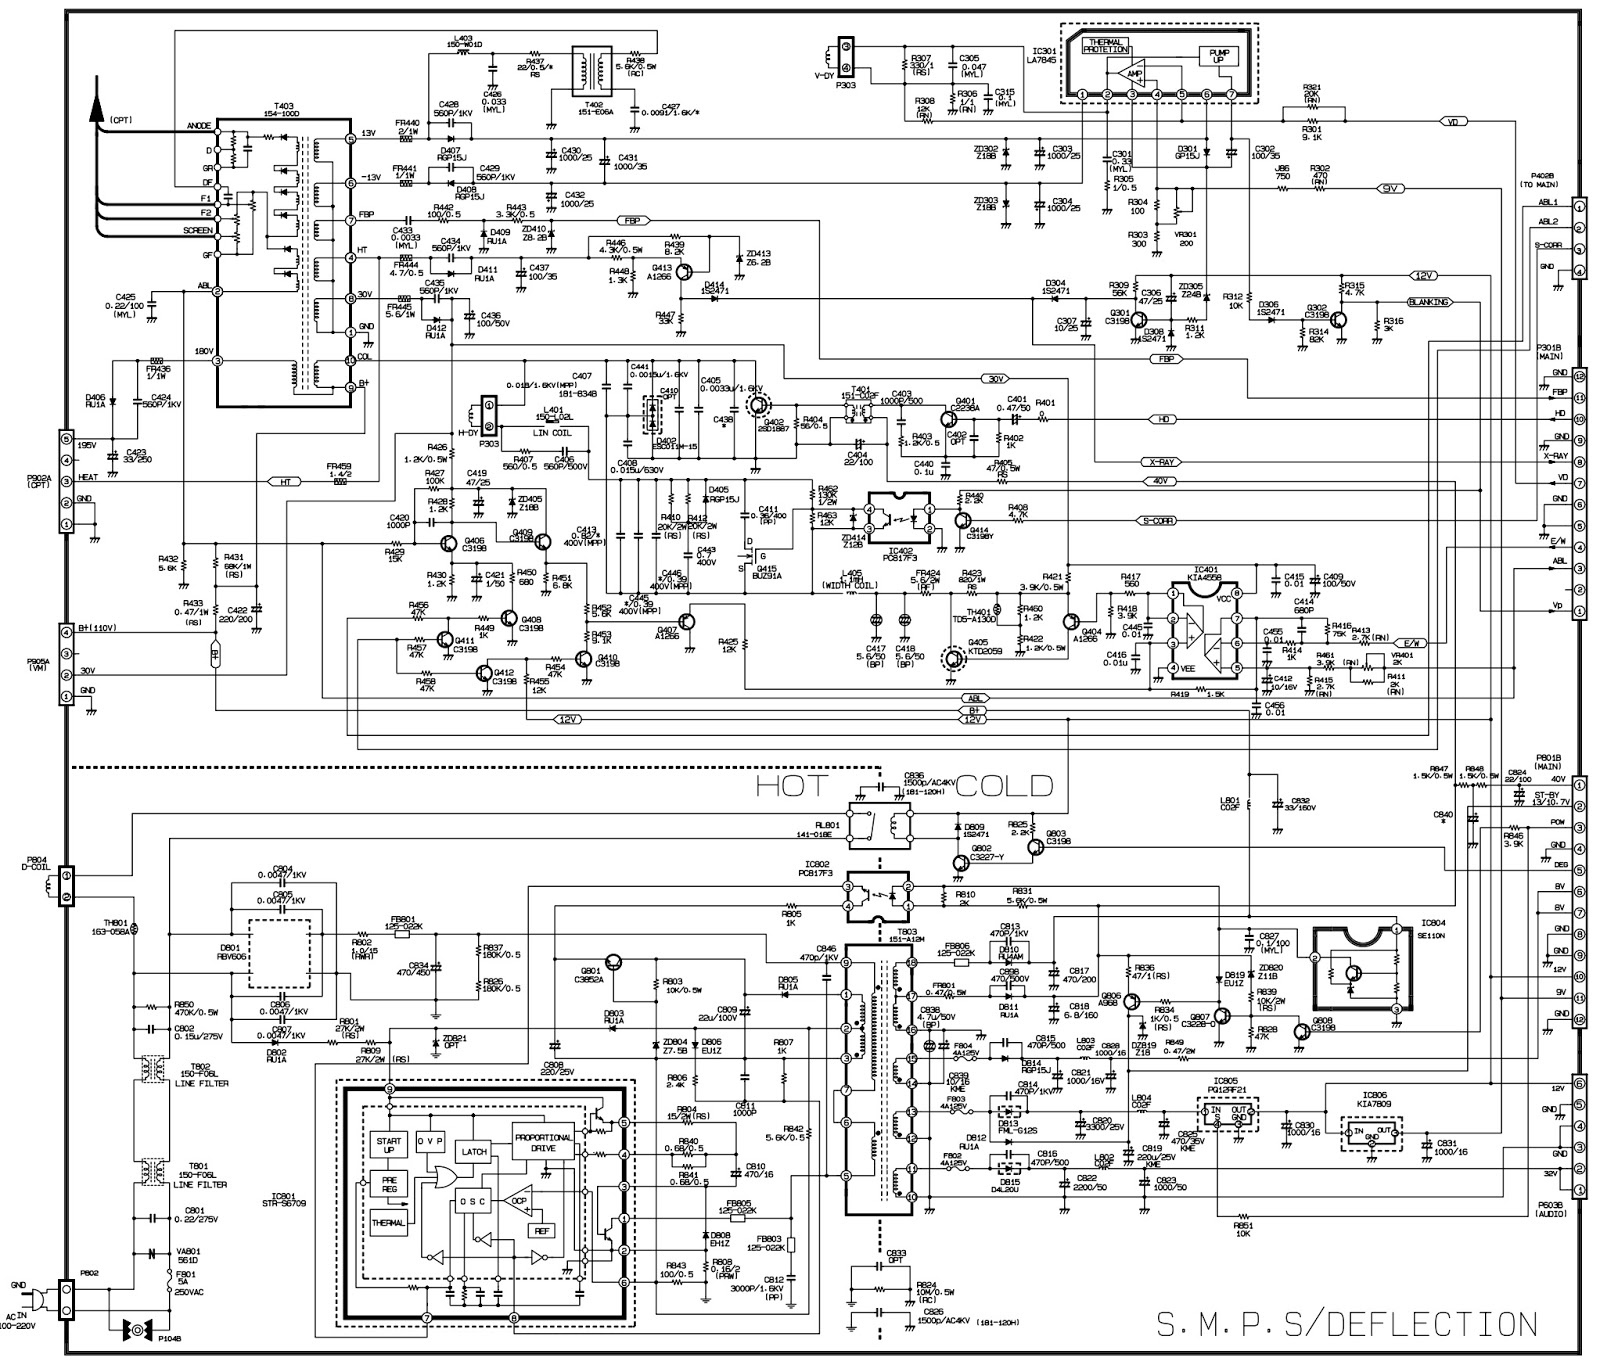 hight resolution of wp32a30 lg 32 inch crt tv circuit diagram schematic diagrams lcd tv problem troubleshooting crt tv